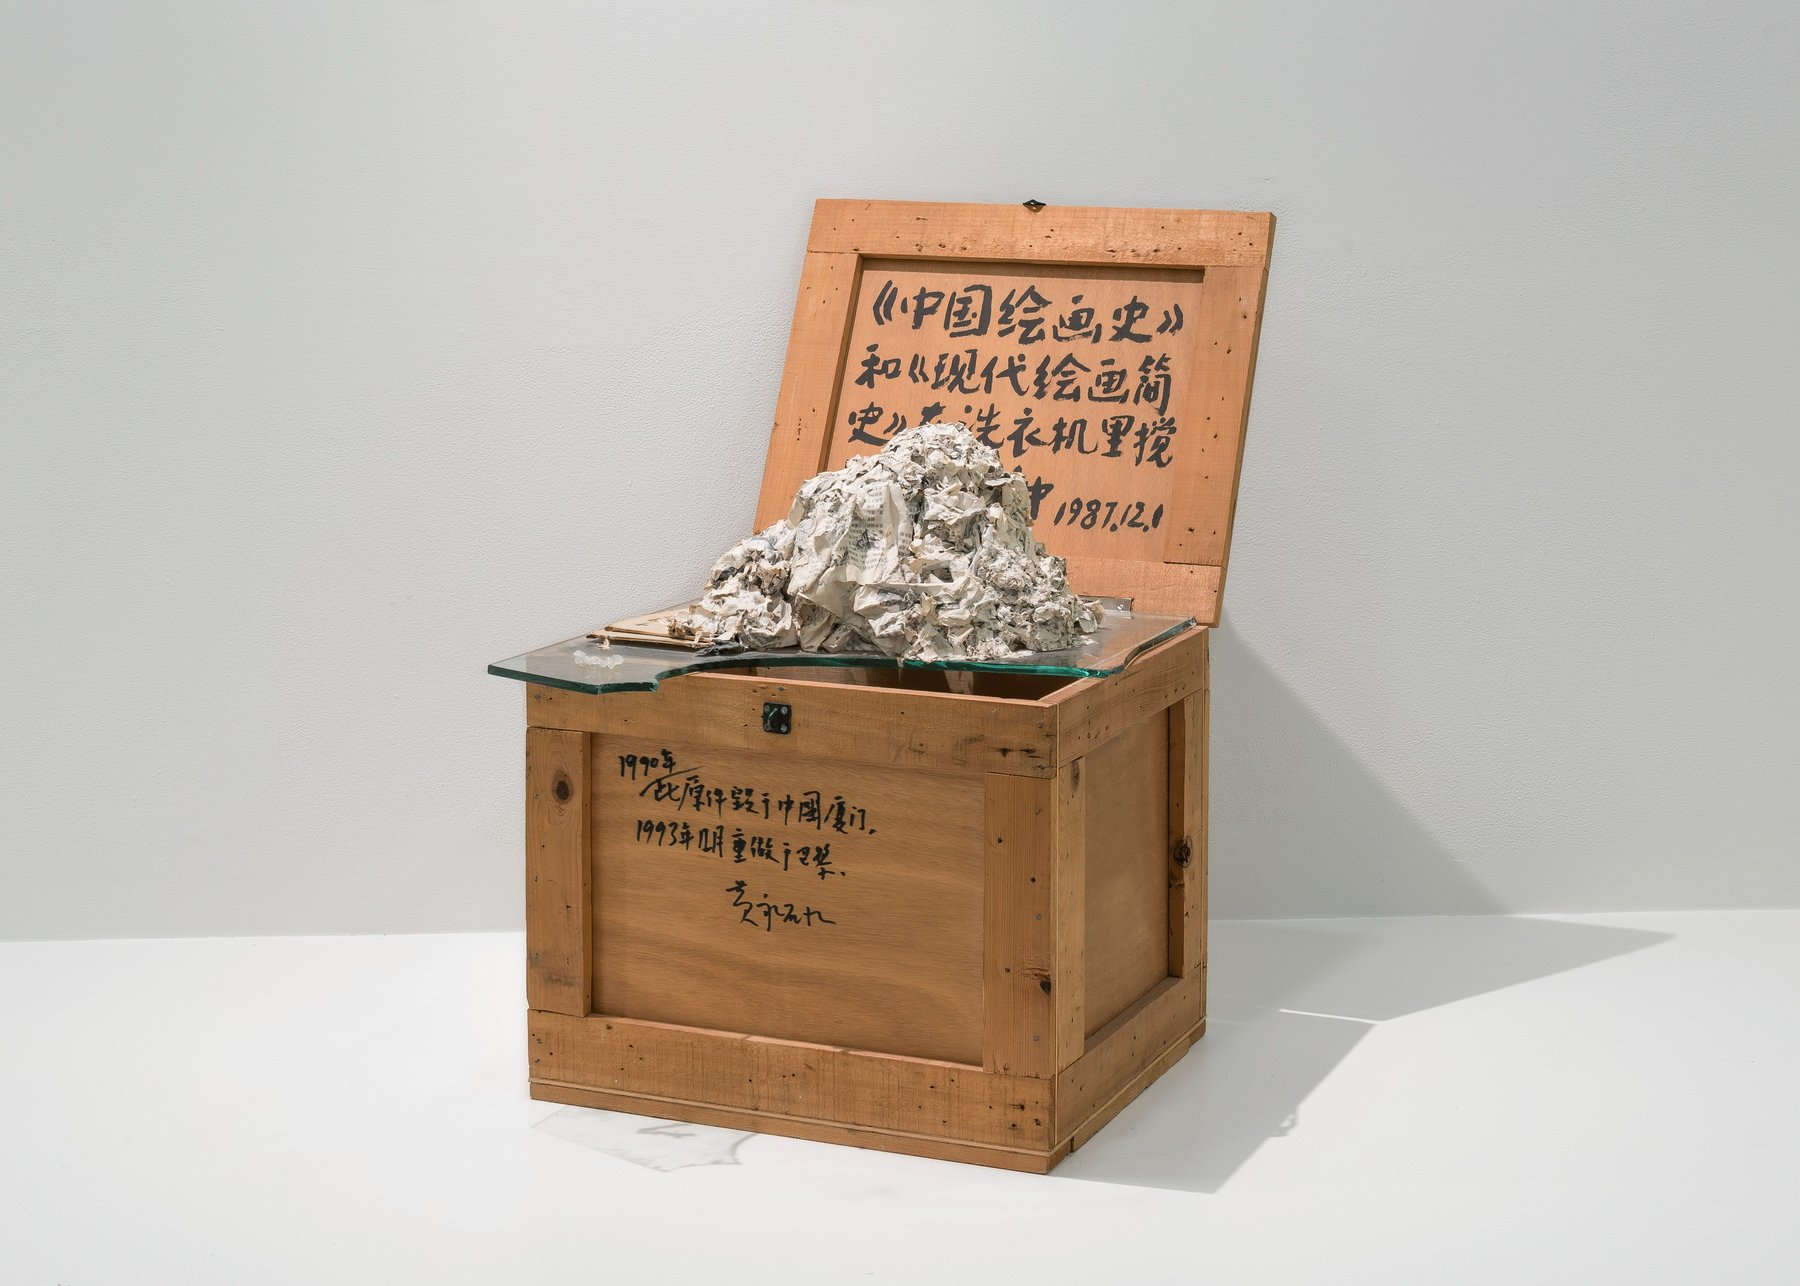 wooden box containing glass plane and crumpled newspaper